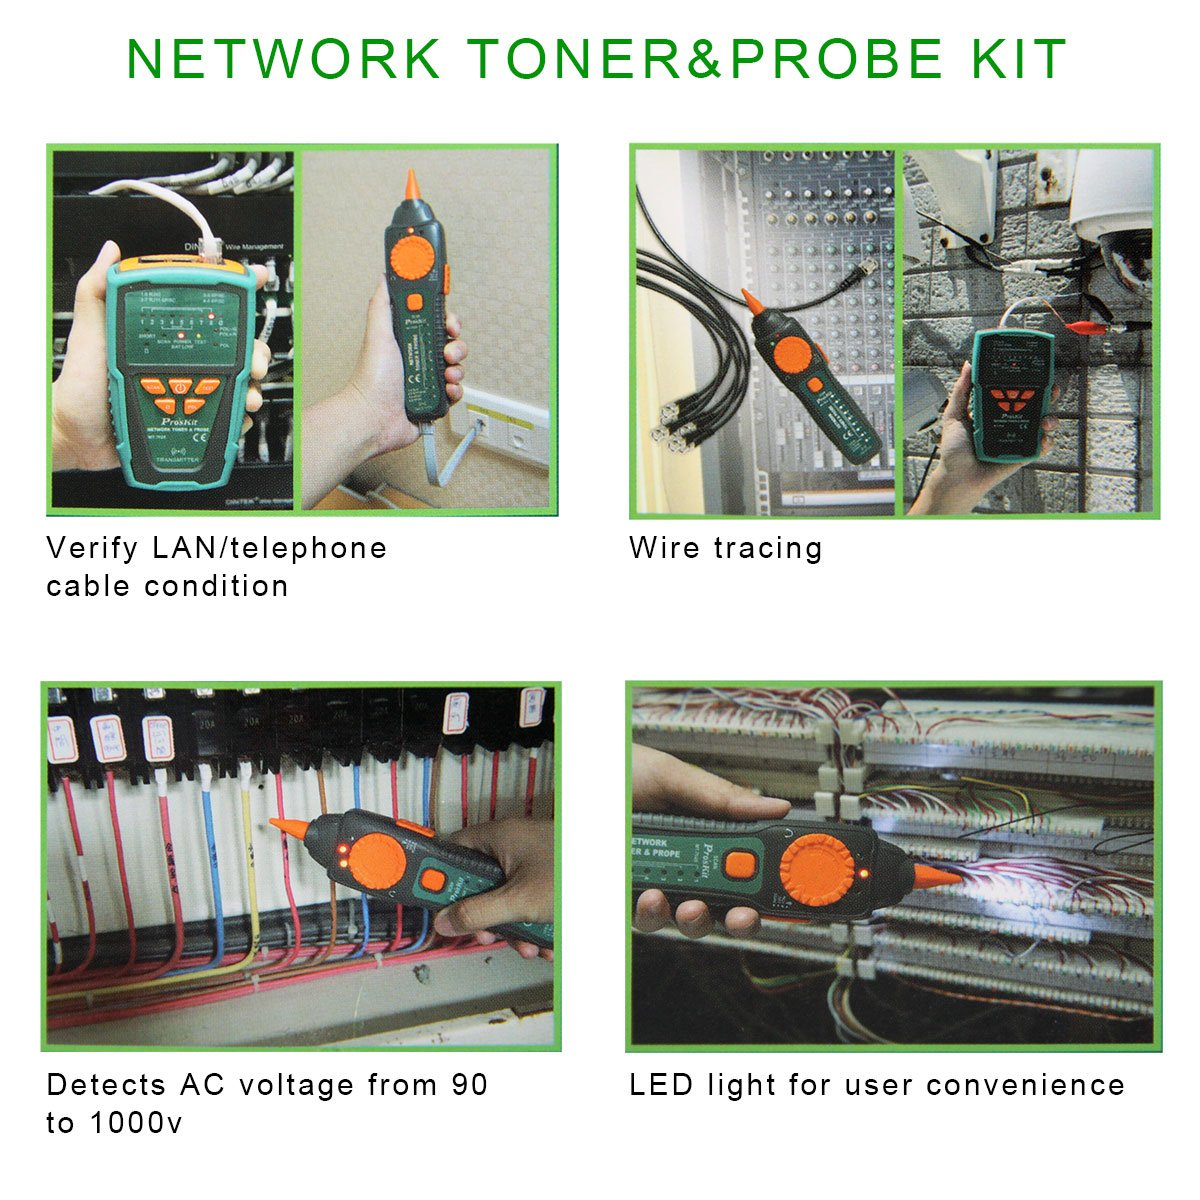 Proskit Mt 7028 Network Coaxial Cables Toner Generator Probe Kit Pyle Phct205 Cable Tester W Utp Ftp Bnc Short Circuit Wire Tracing Up To 3 Kilometer Industrial Scientific